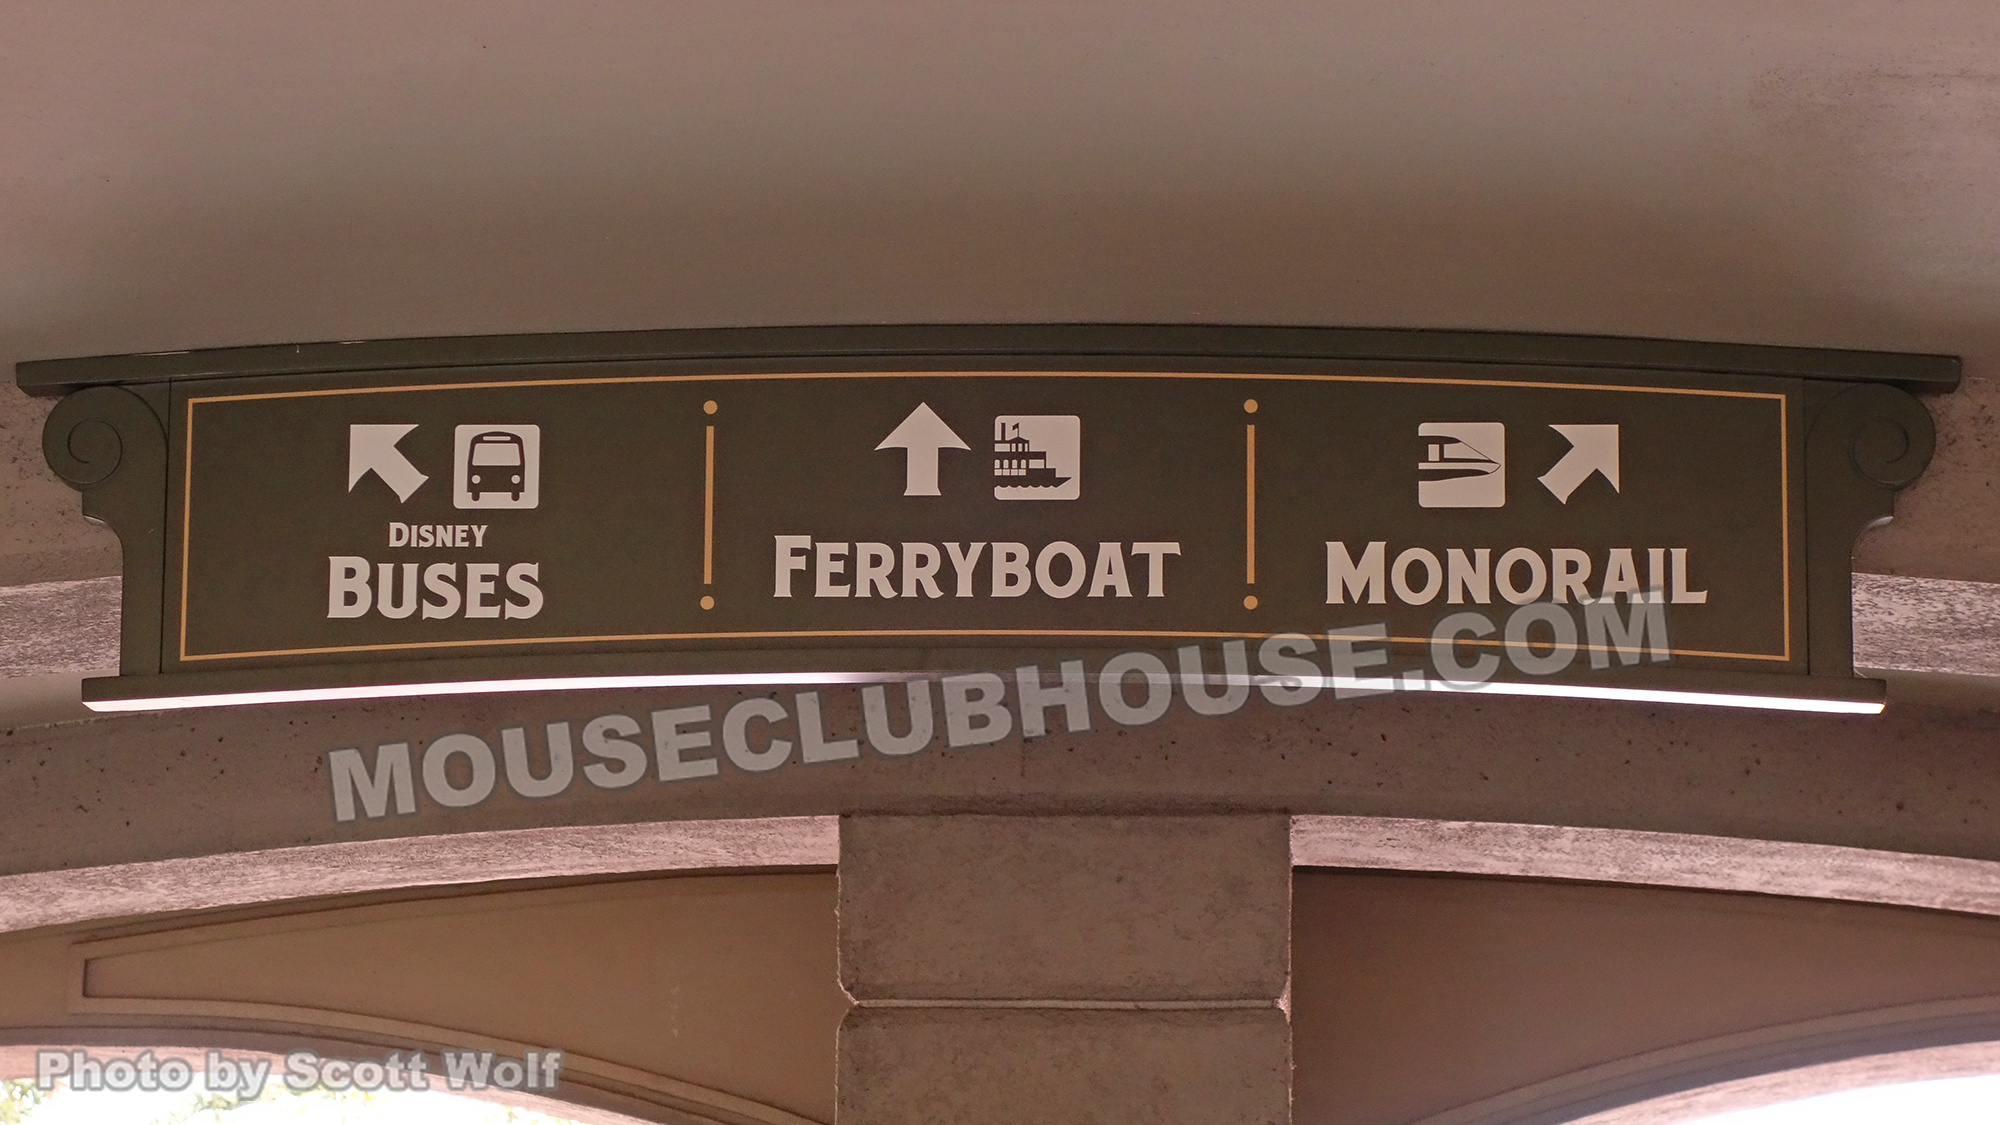 Buses, Ferryboat, Monorail sign in Walt Disney World